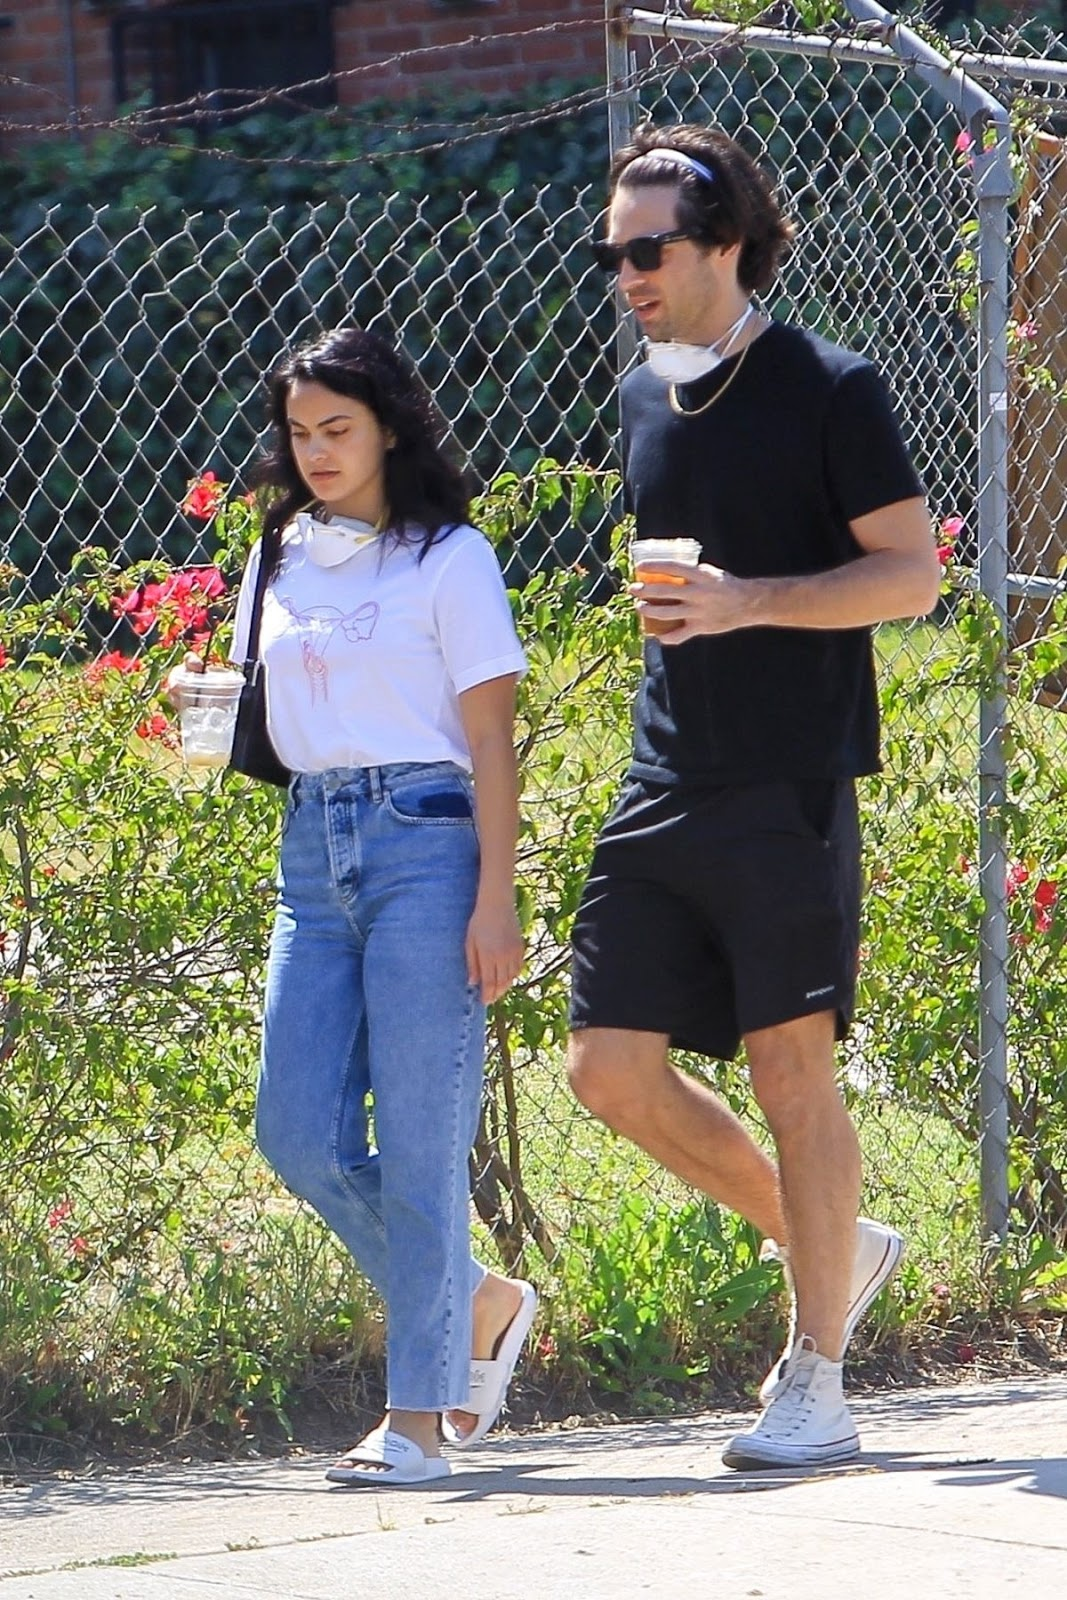 Camila Mendes Out and About in Los Angeles, 05.08.2020 8